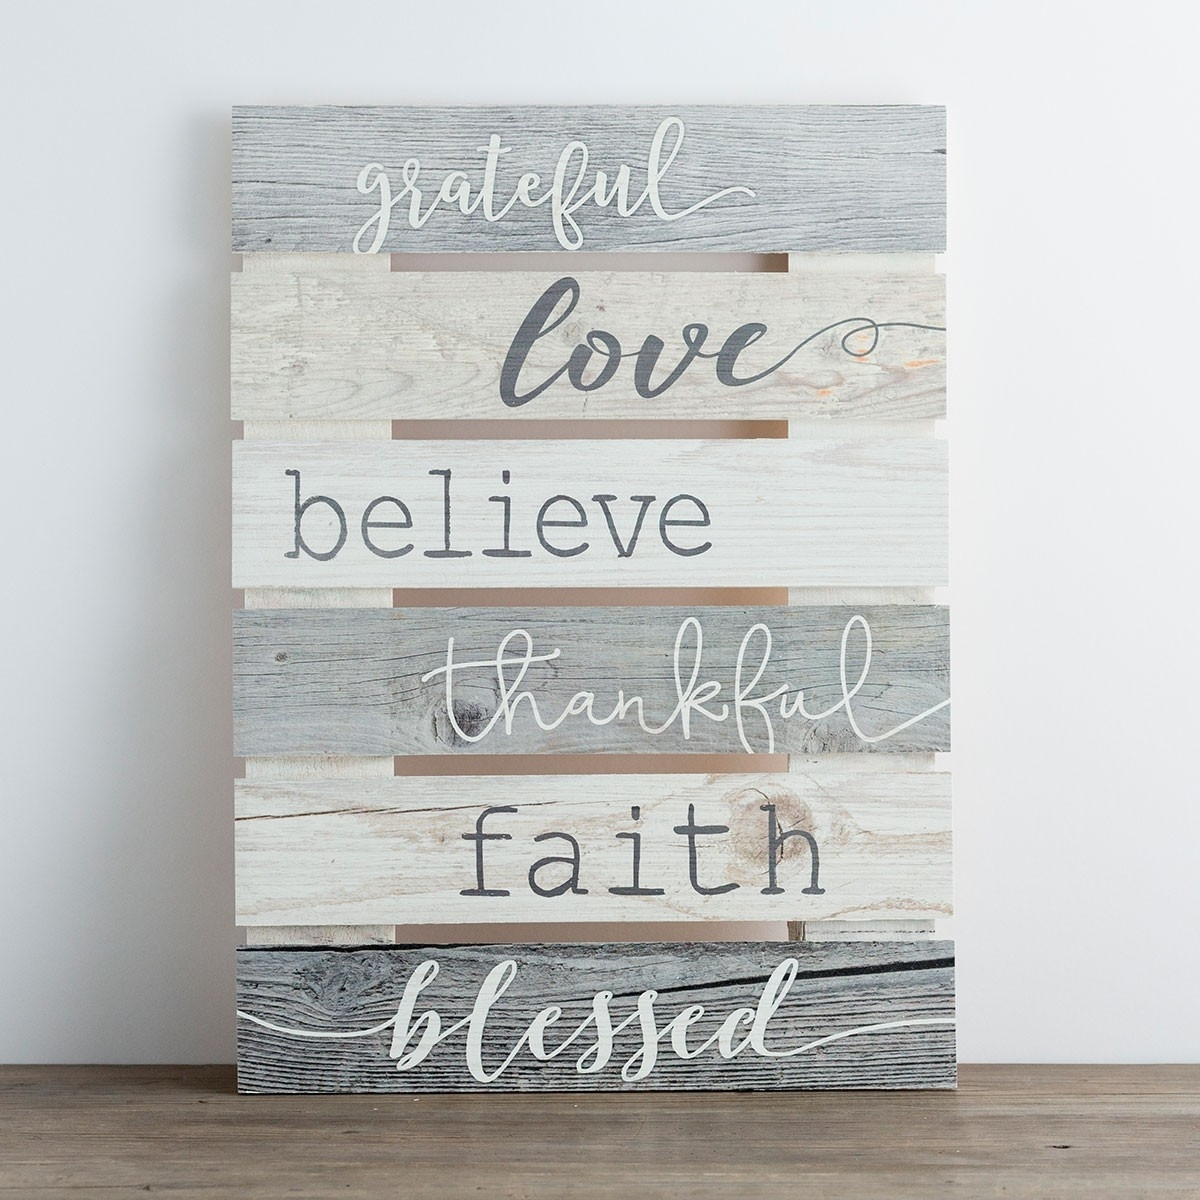 Grateful – Plank Wall Art | Dayspring With Regard To Most Current Plank Wall Art (Gallery 14 of 20)